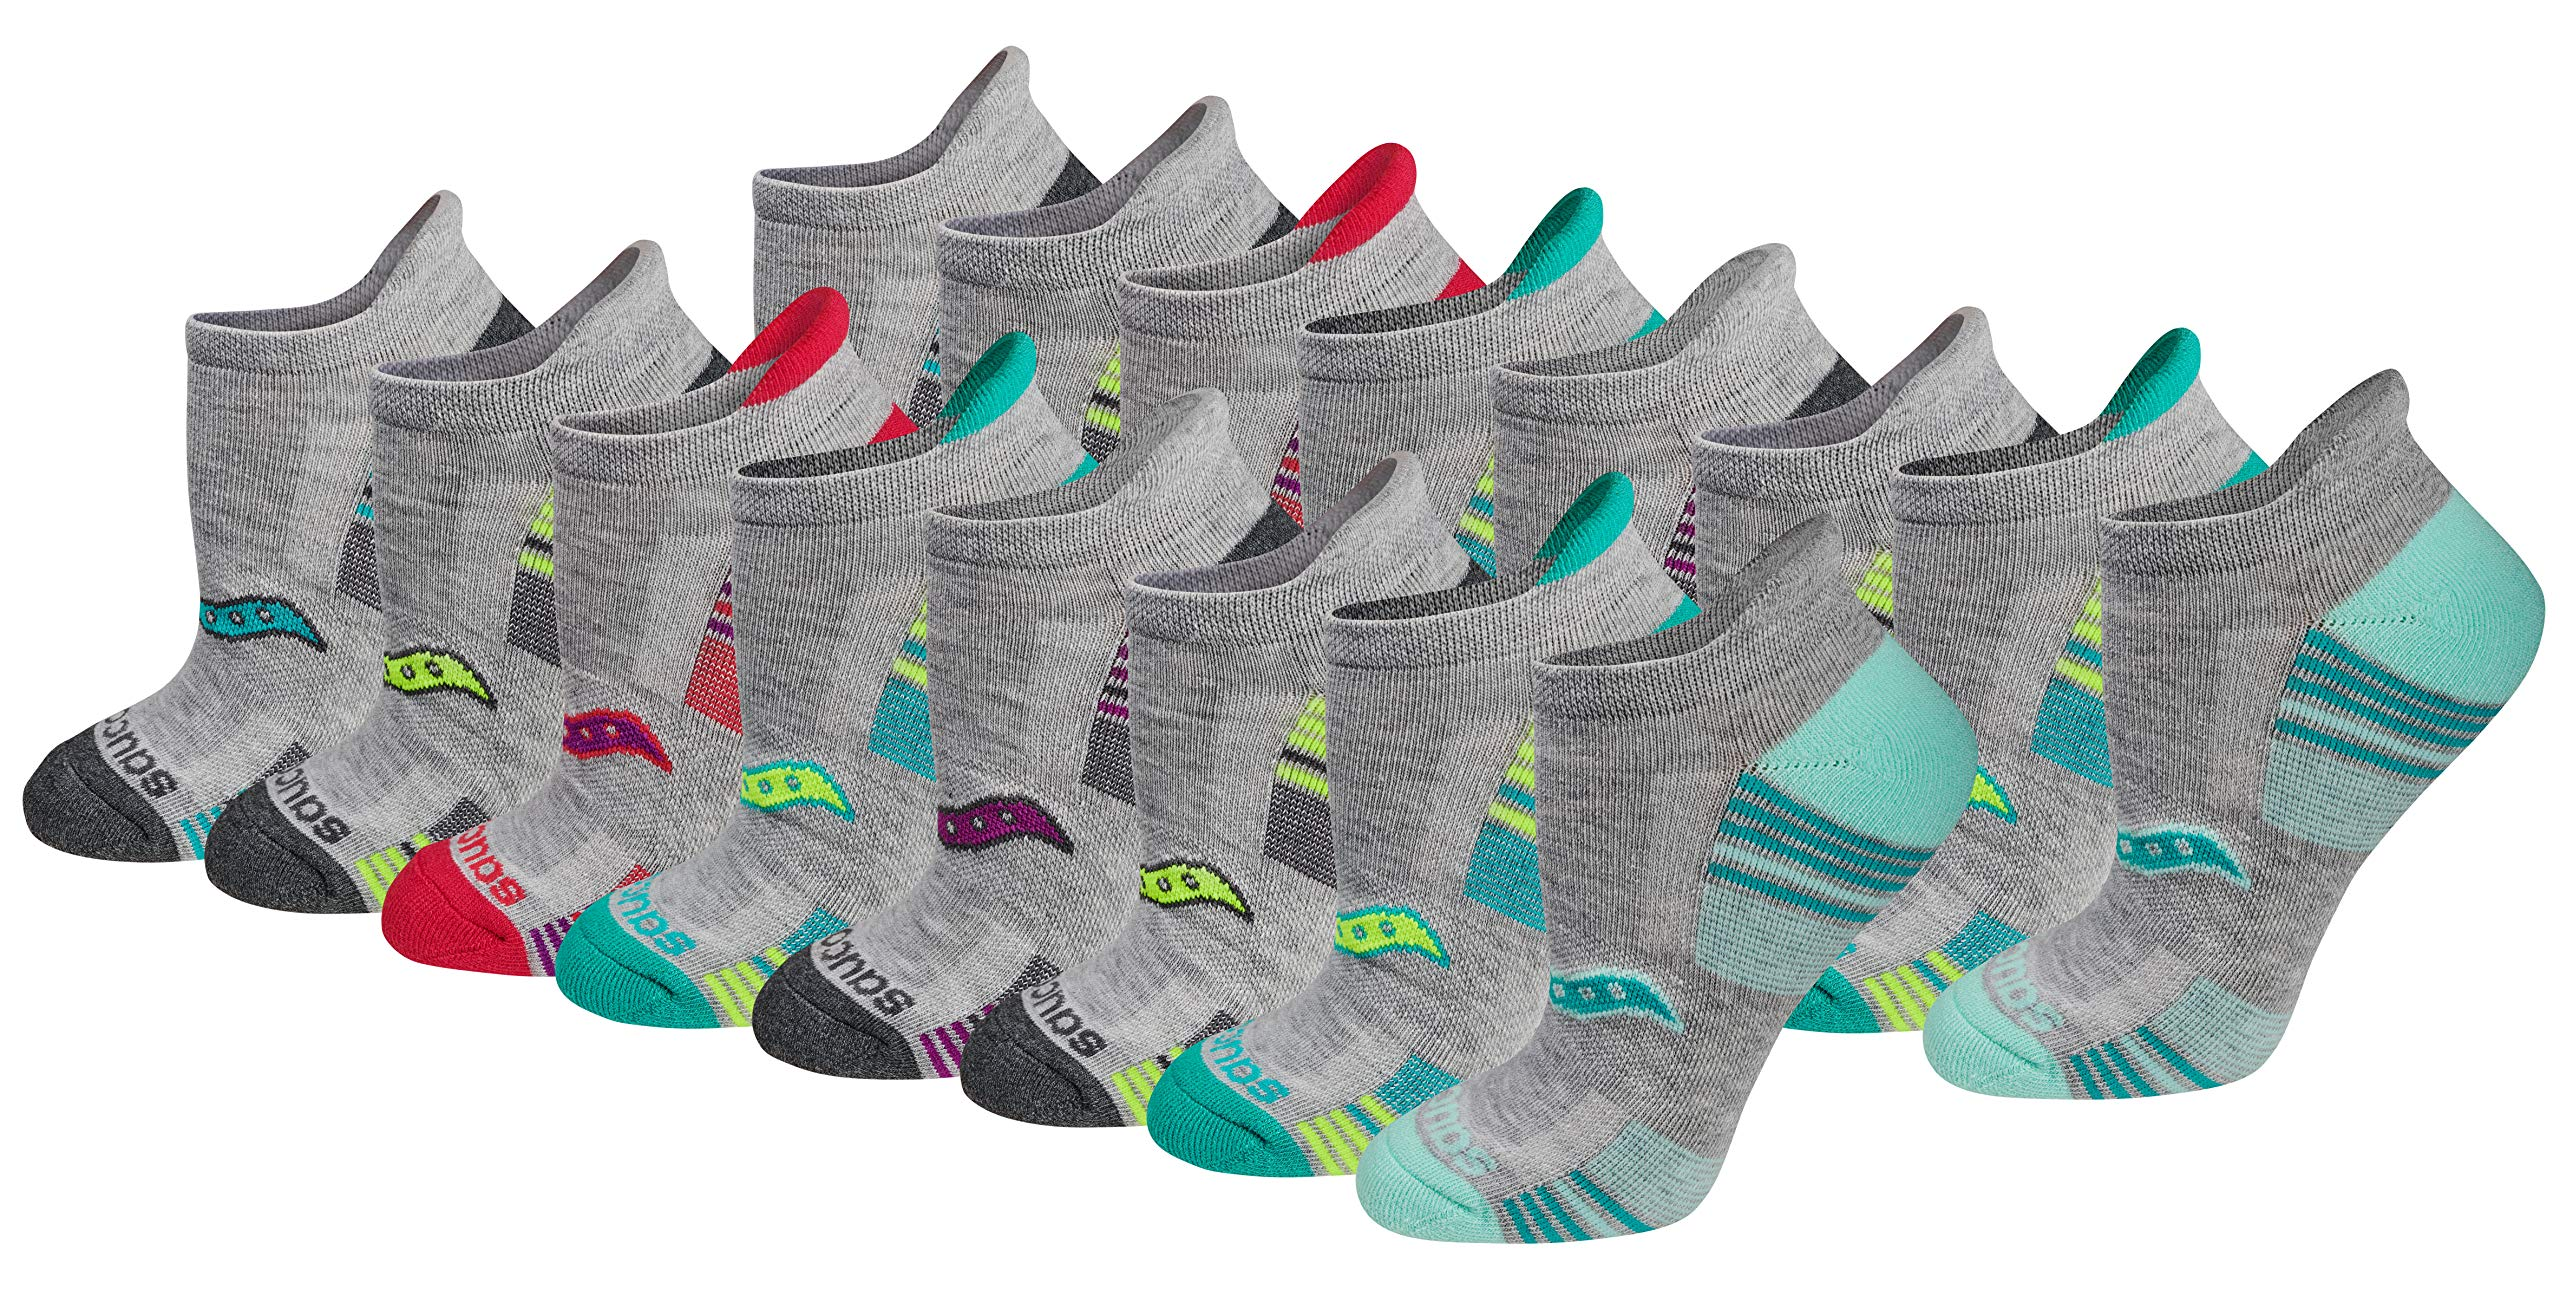 Saucony Women's Performance Heel Tab Athletic Socks (8 & 16 Packs), Grey), Shoe Size: 5-10